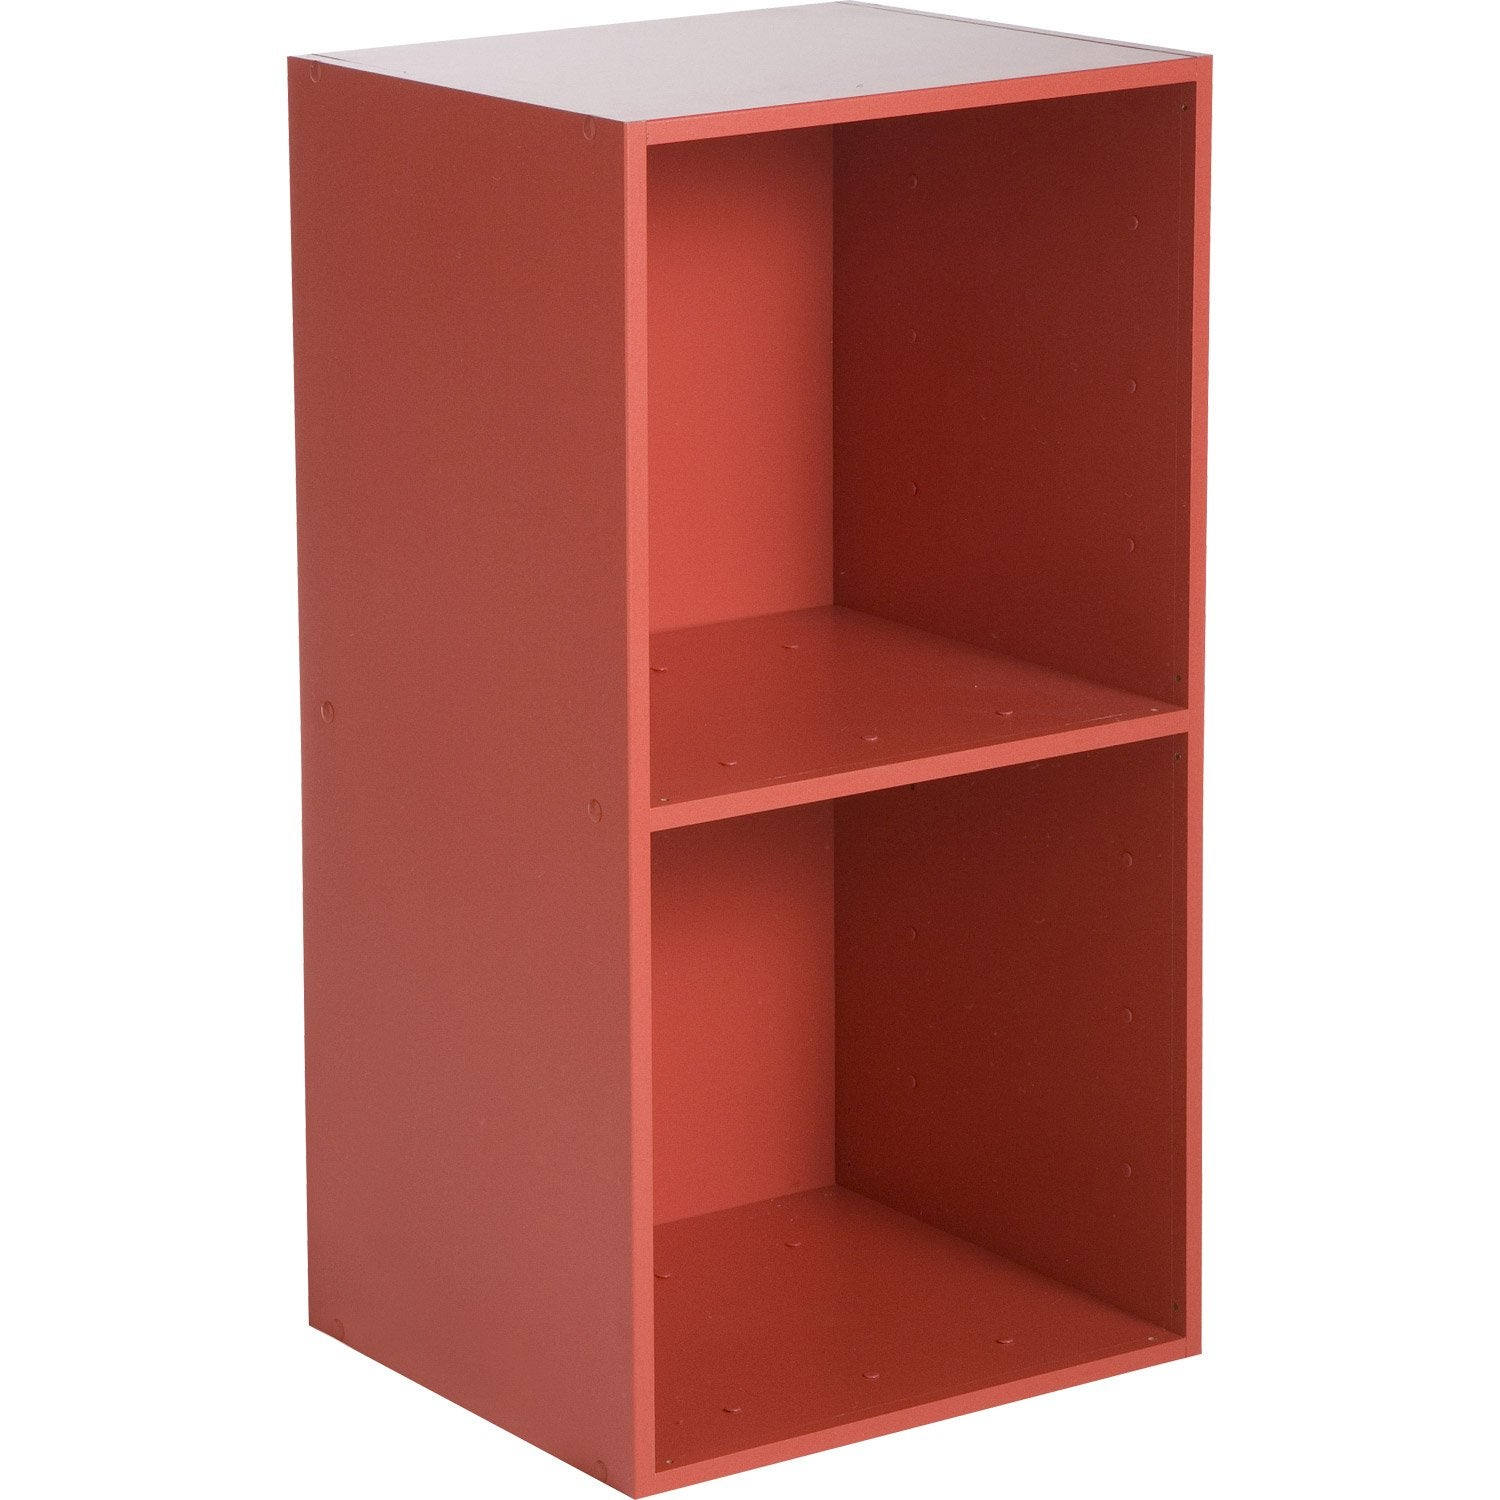 Etag re 2 cases multikaz rouge x x - Etagere modulable leroy merlin ...